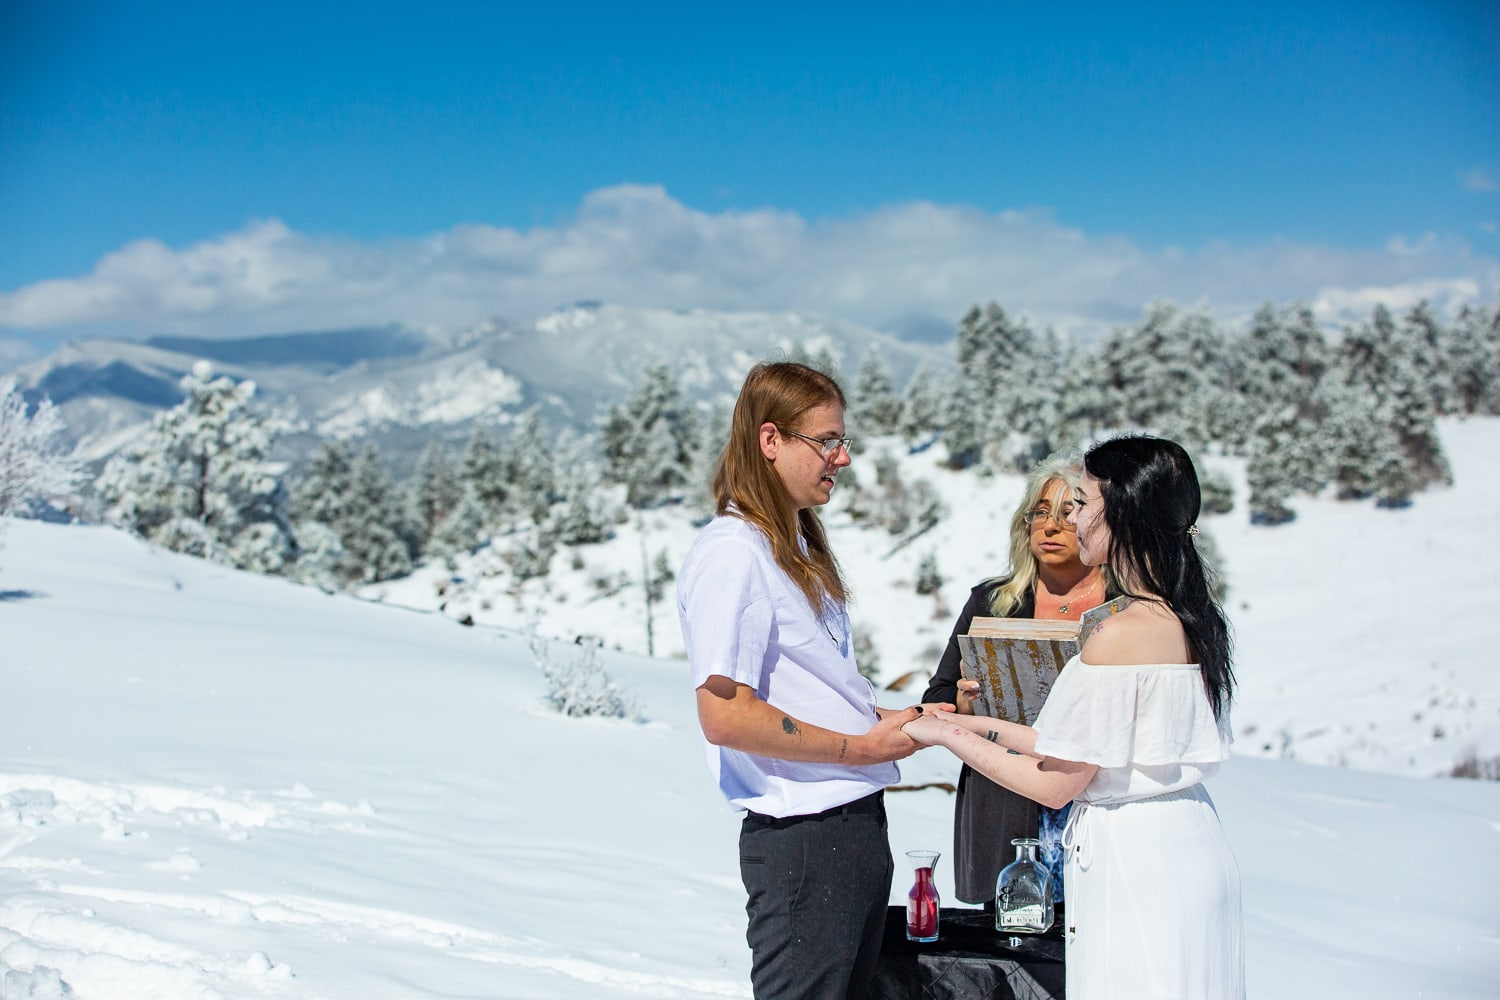 A bride and groom have an elopement ceremony in the winter on a mountainside.